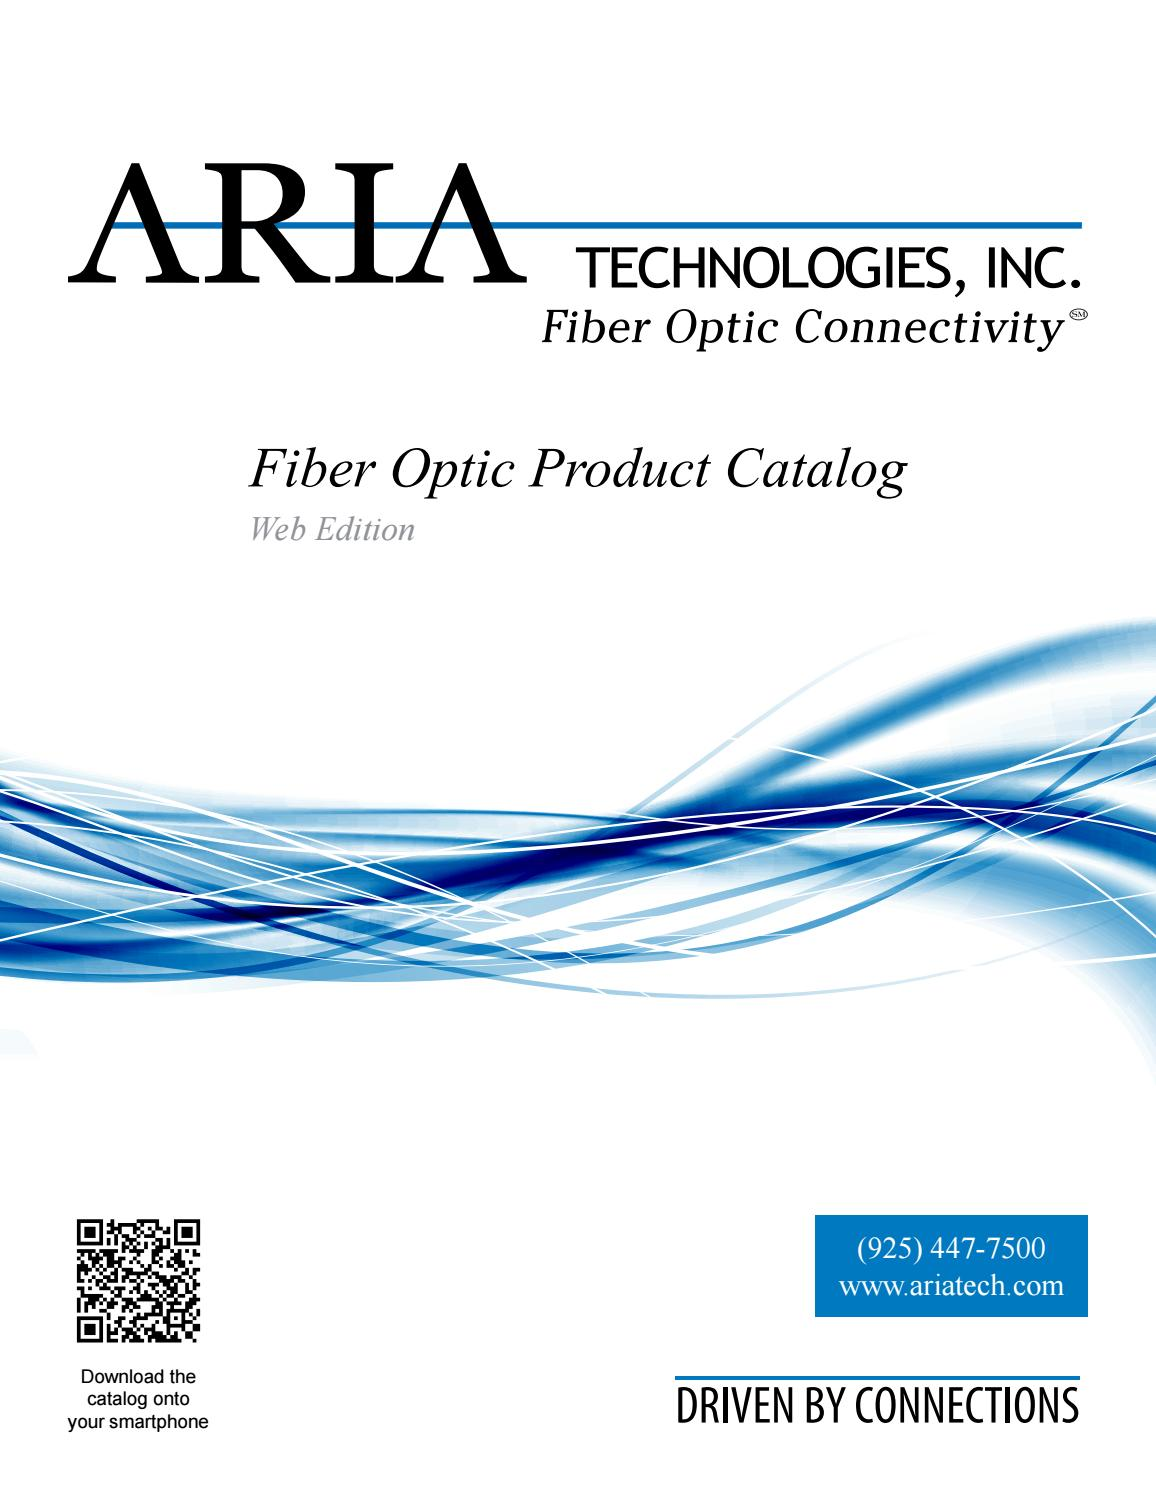 Aria Technologies Fiber Optic Product Catalog By Cablethe Global Solution In Components Issuu